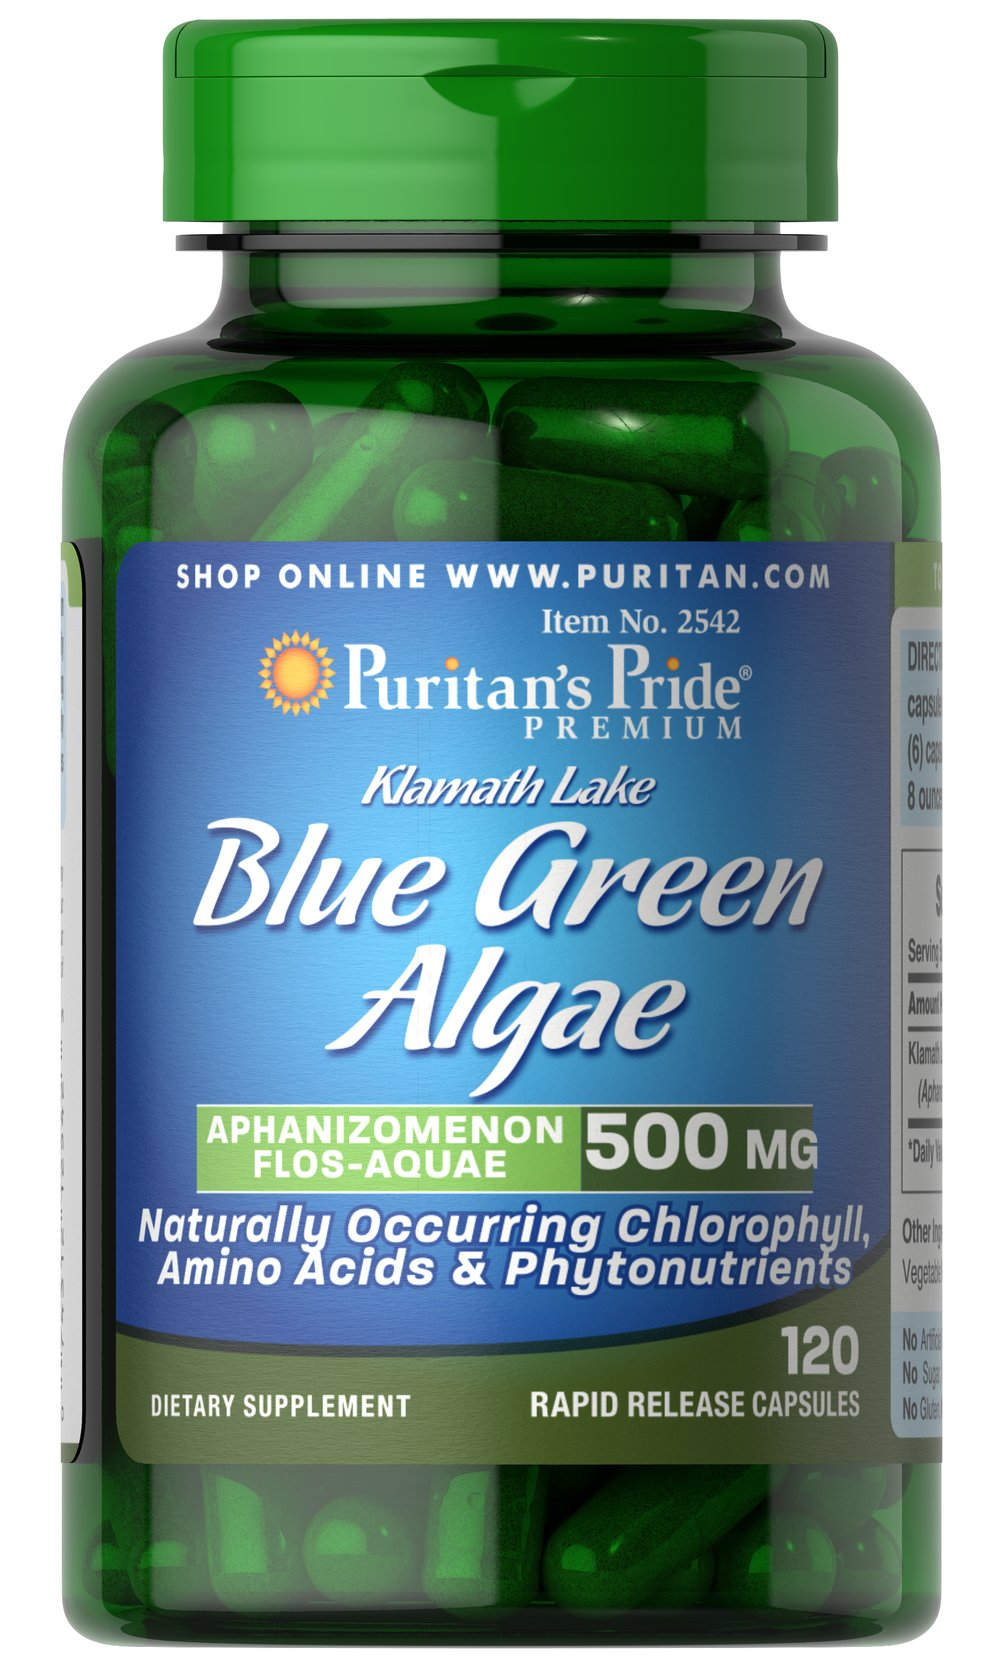 Klamath Lake Blue Green Algae 500 mg Klamath Lake Blue Green Algae grows naturally in the deep waters of Klamath Lake in Southern Oregon. It is one of only a few wildcrafted supplements available for consumption.  This extraordinary algae contains many phytonutrients, as well as chlorophyll, carotenoids, polyunsaturated fatty acids and the blue-green pigment called phycocyanin, which has been researched for its antioxidant and immune support properties.** 120 Capsules 500 mg $47.99